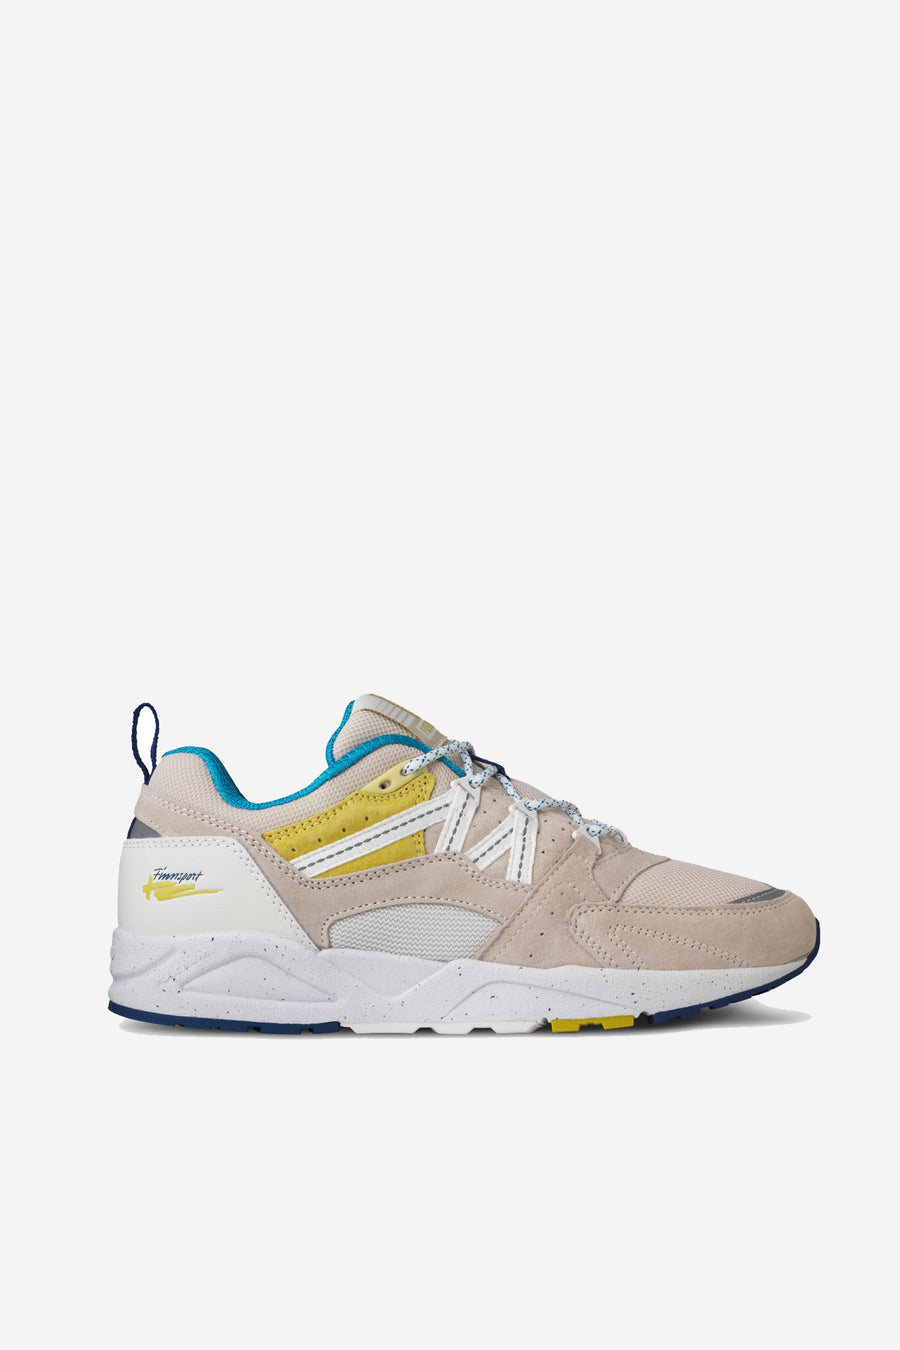 KARHU Fusion 2.0 Rainy Day/Antique Moss | HAVN